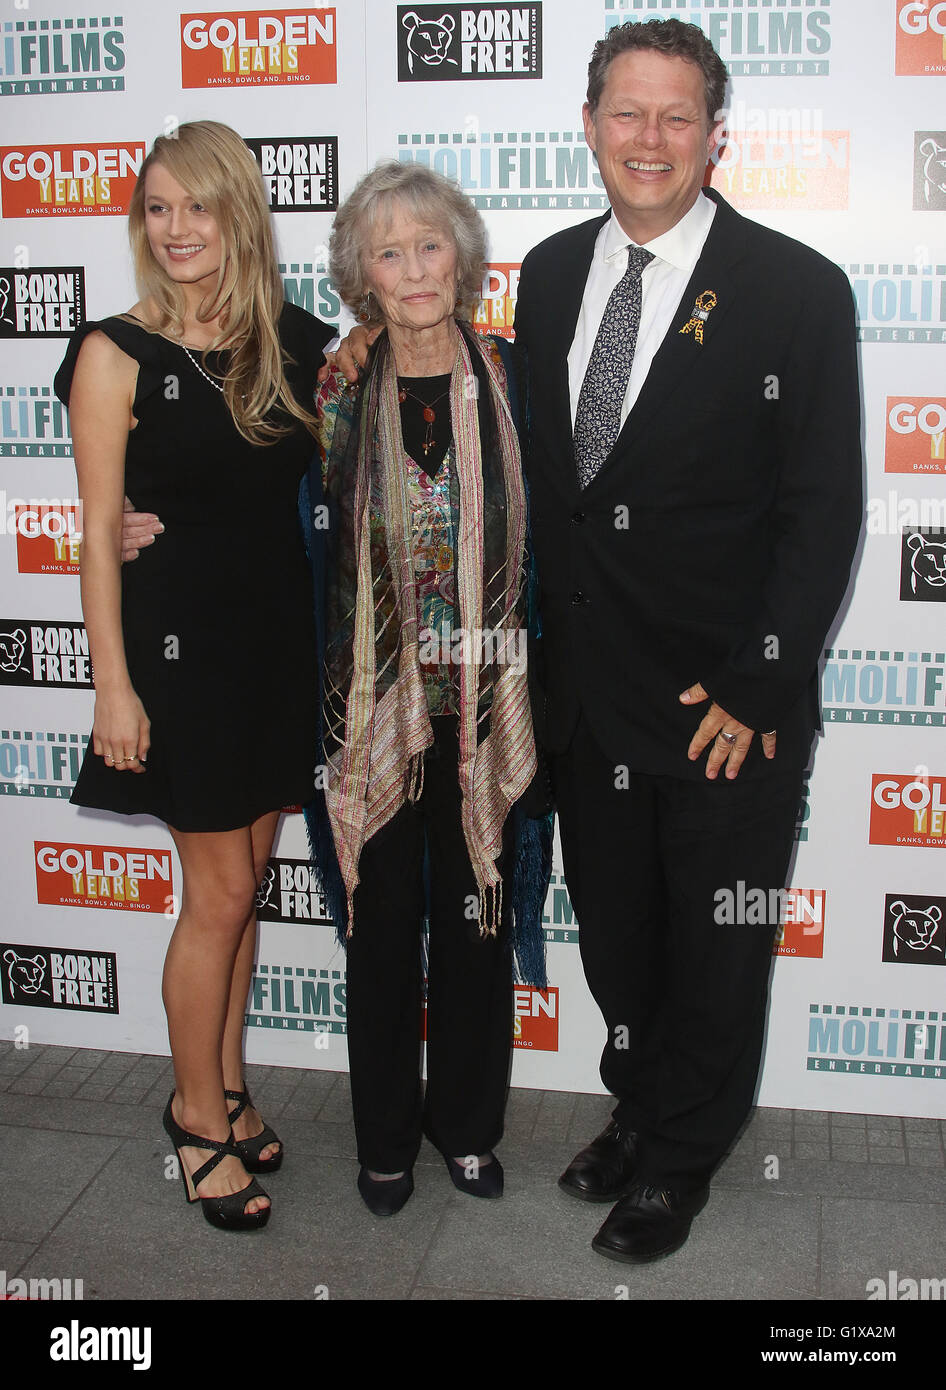 April 14, 2016 - Lily Travers, Virginia McKenna and William Travers